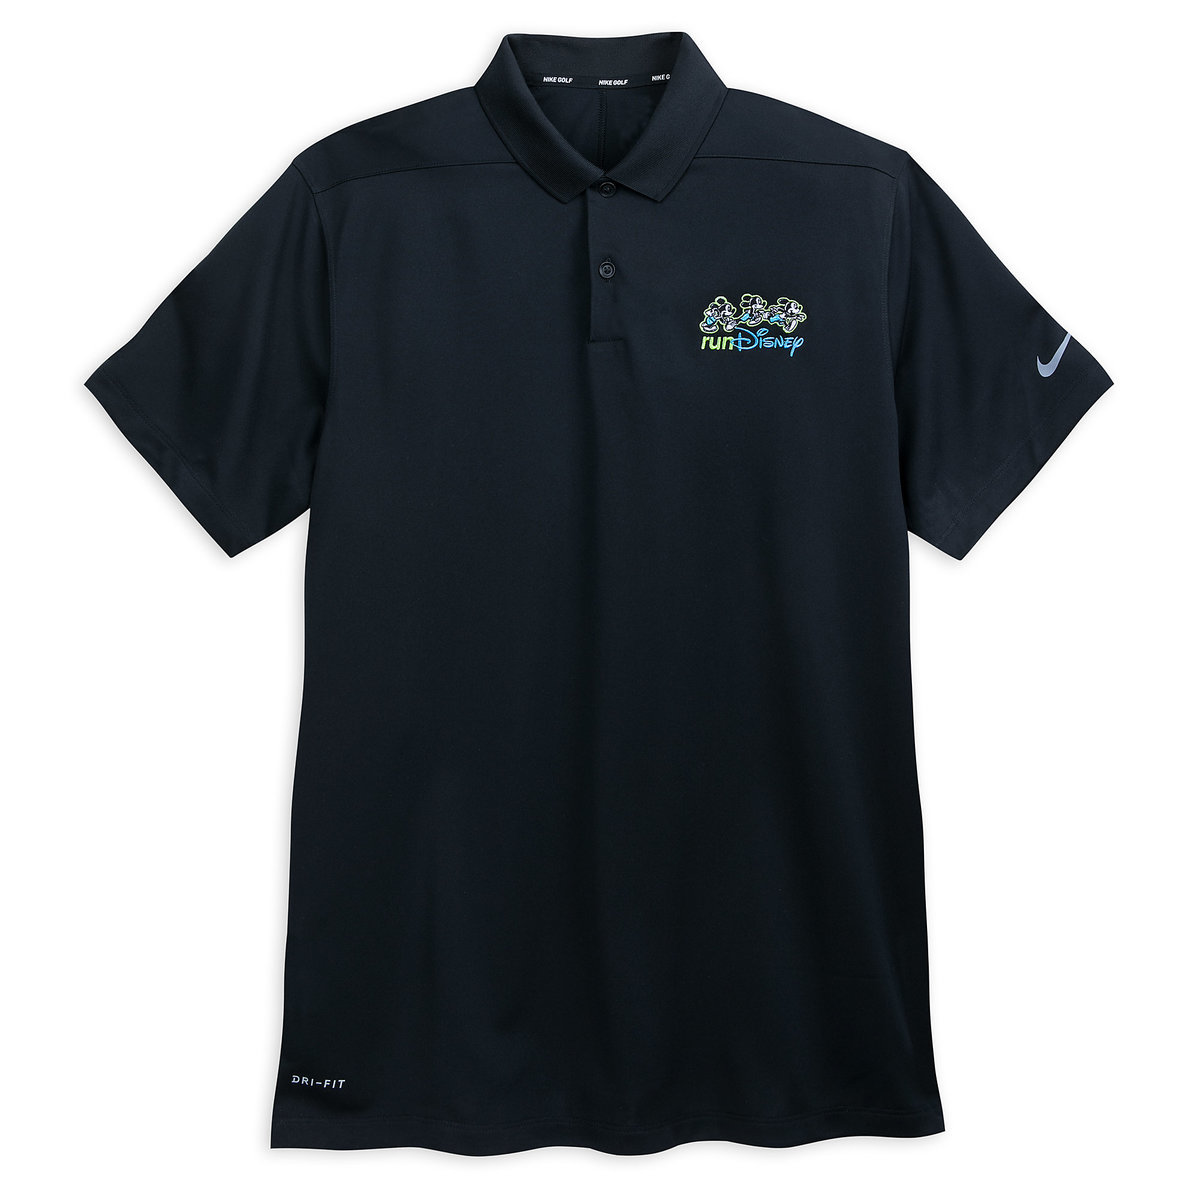 e5900cbc Product Image of Mickey Mouse runDisney Performance Polo Shirt for Adults  by Nike # 1